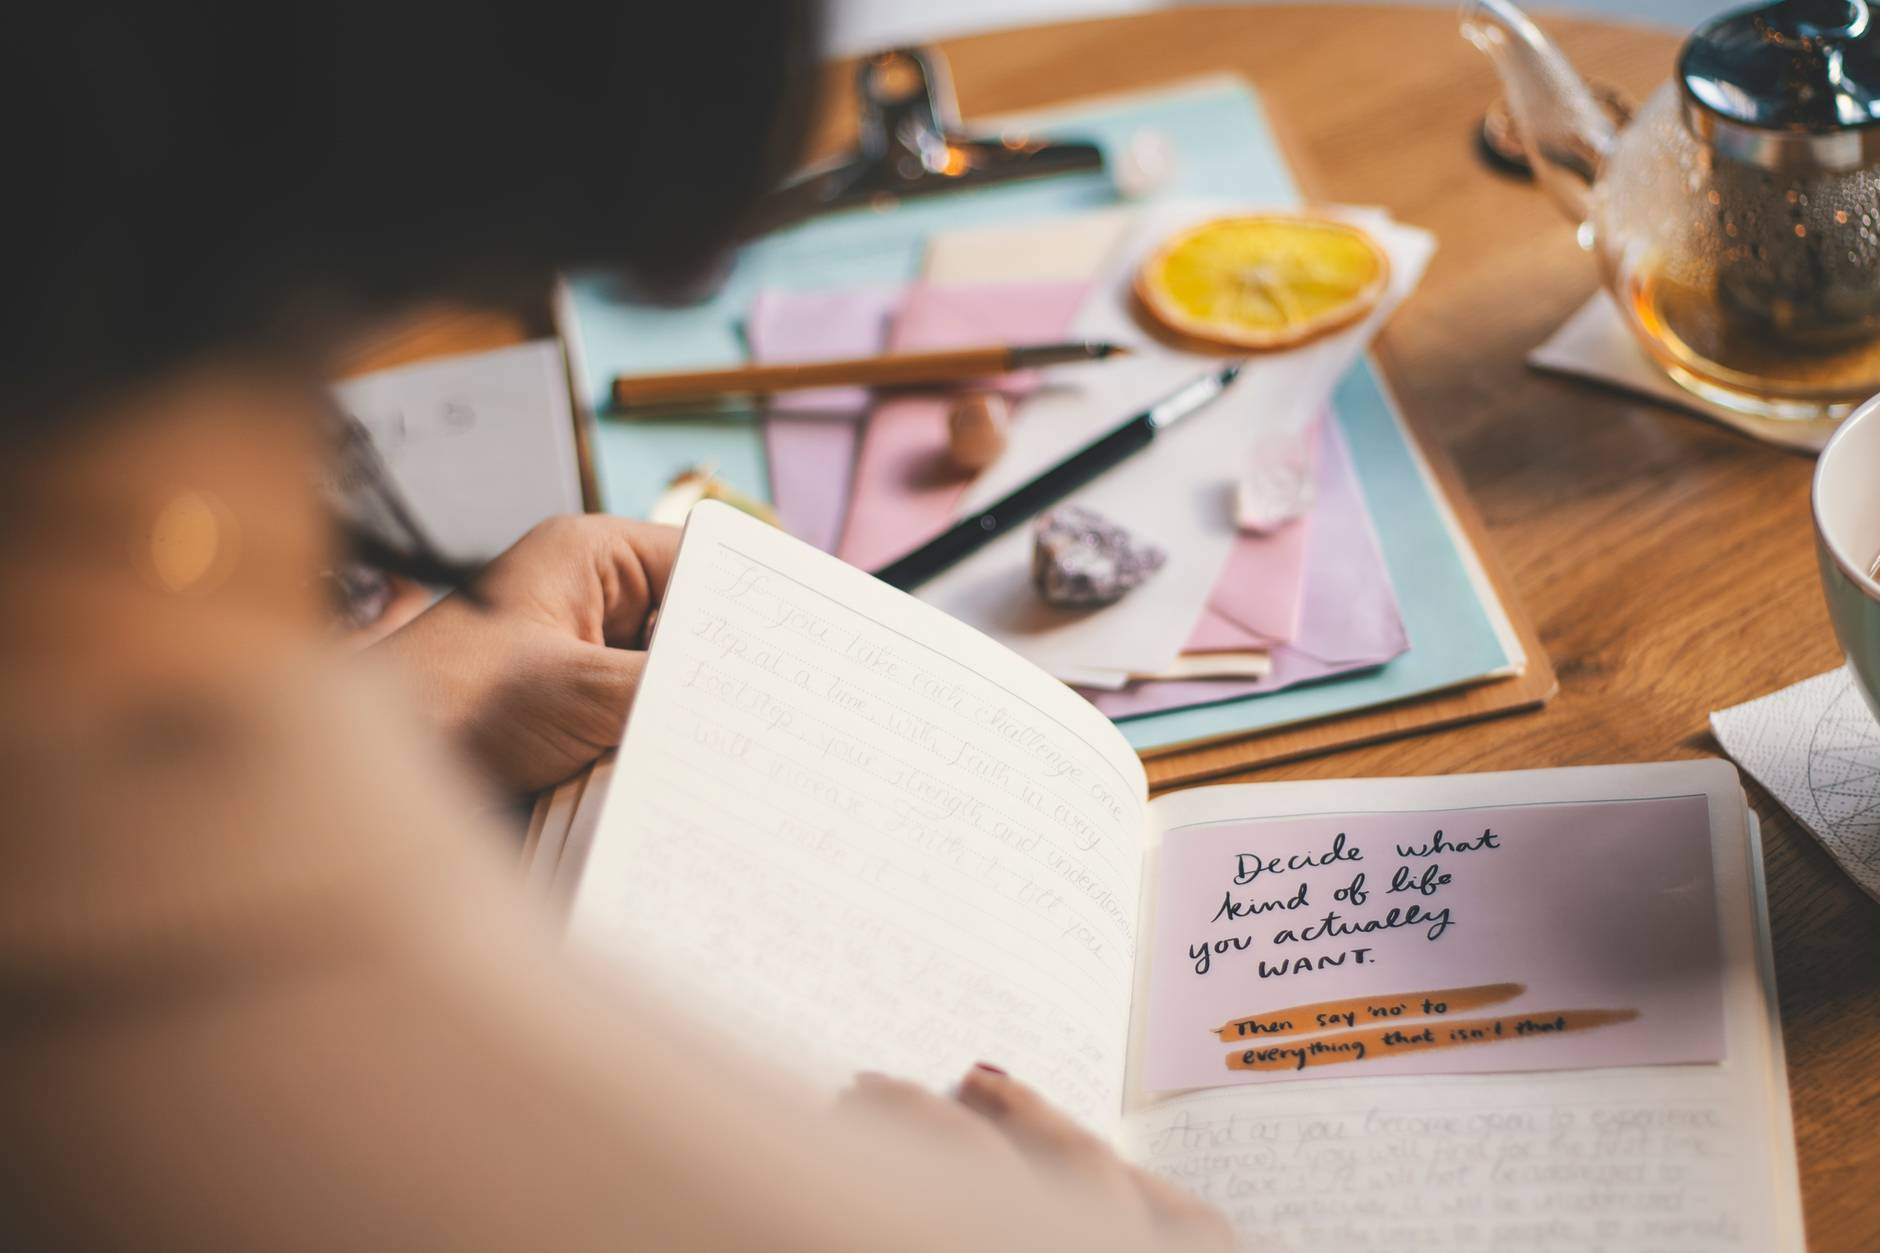 journaling, healing the subconscious mind with writing prompts, self-healing tools,